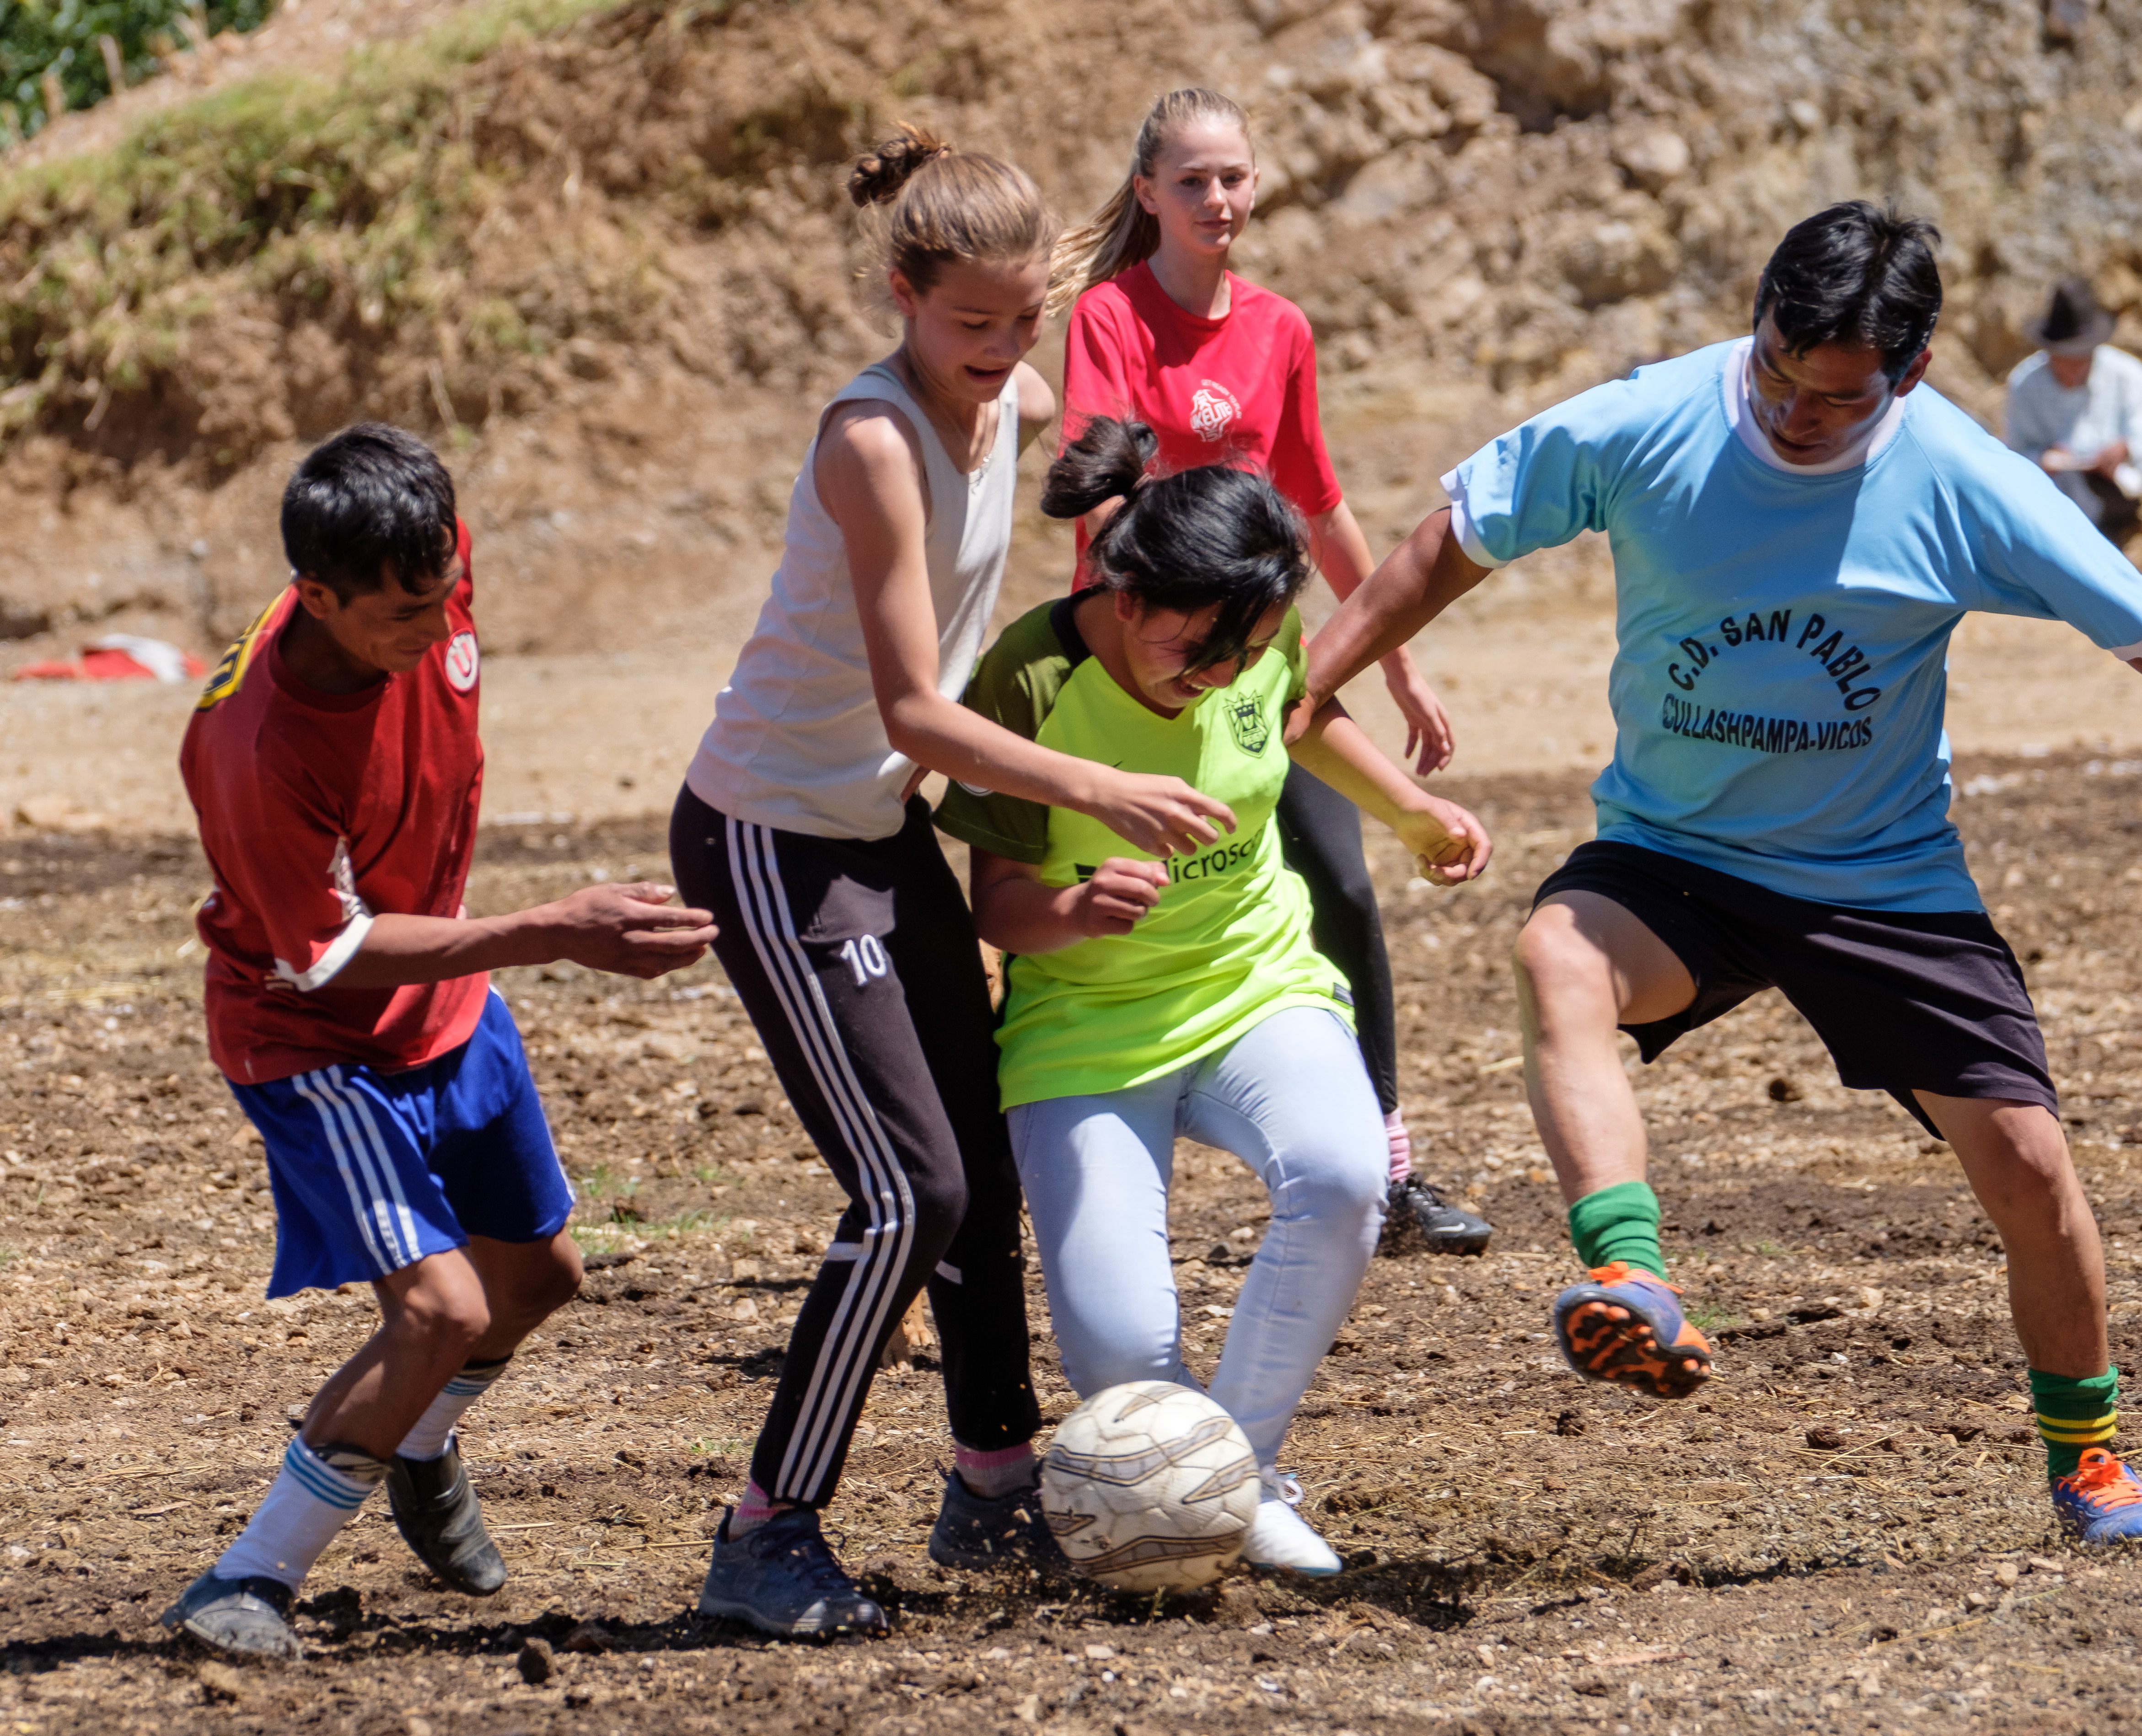 West Seattle resident Lucy Gerston played soccer against villagers in Vicos, Peru – while working on a project building a sportsfield with local non-profit Crooked Trails.